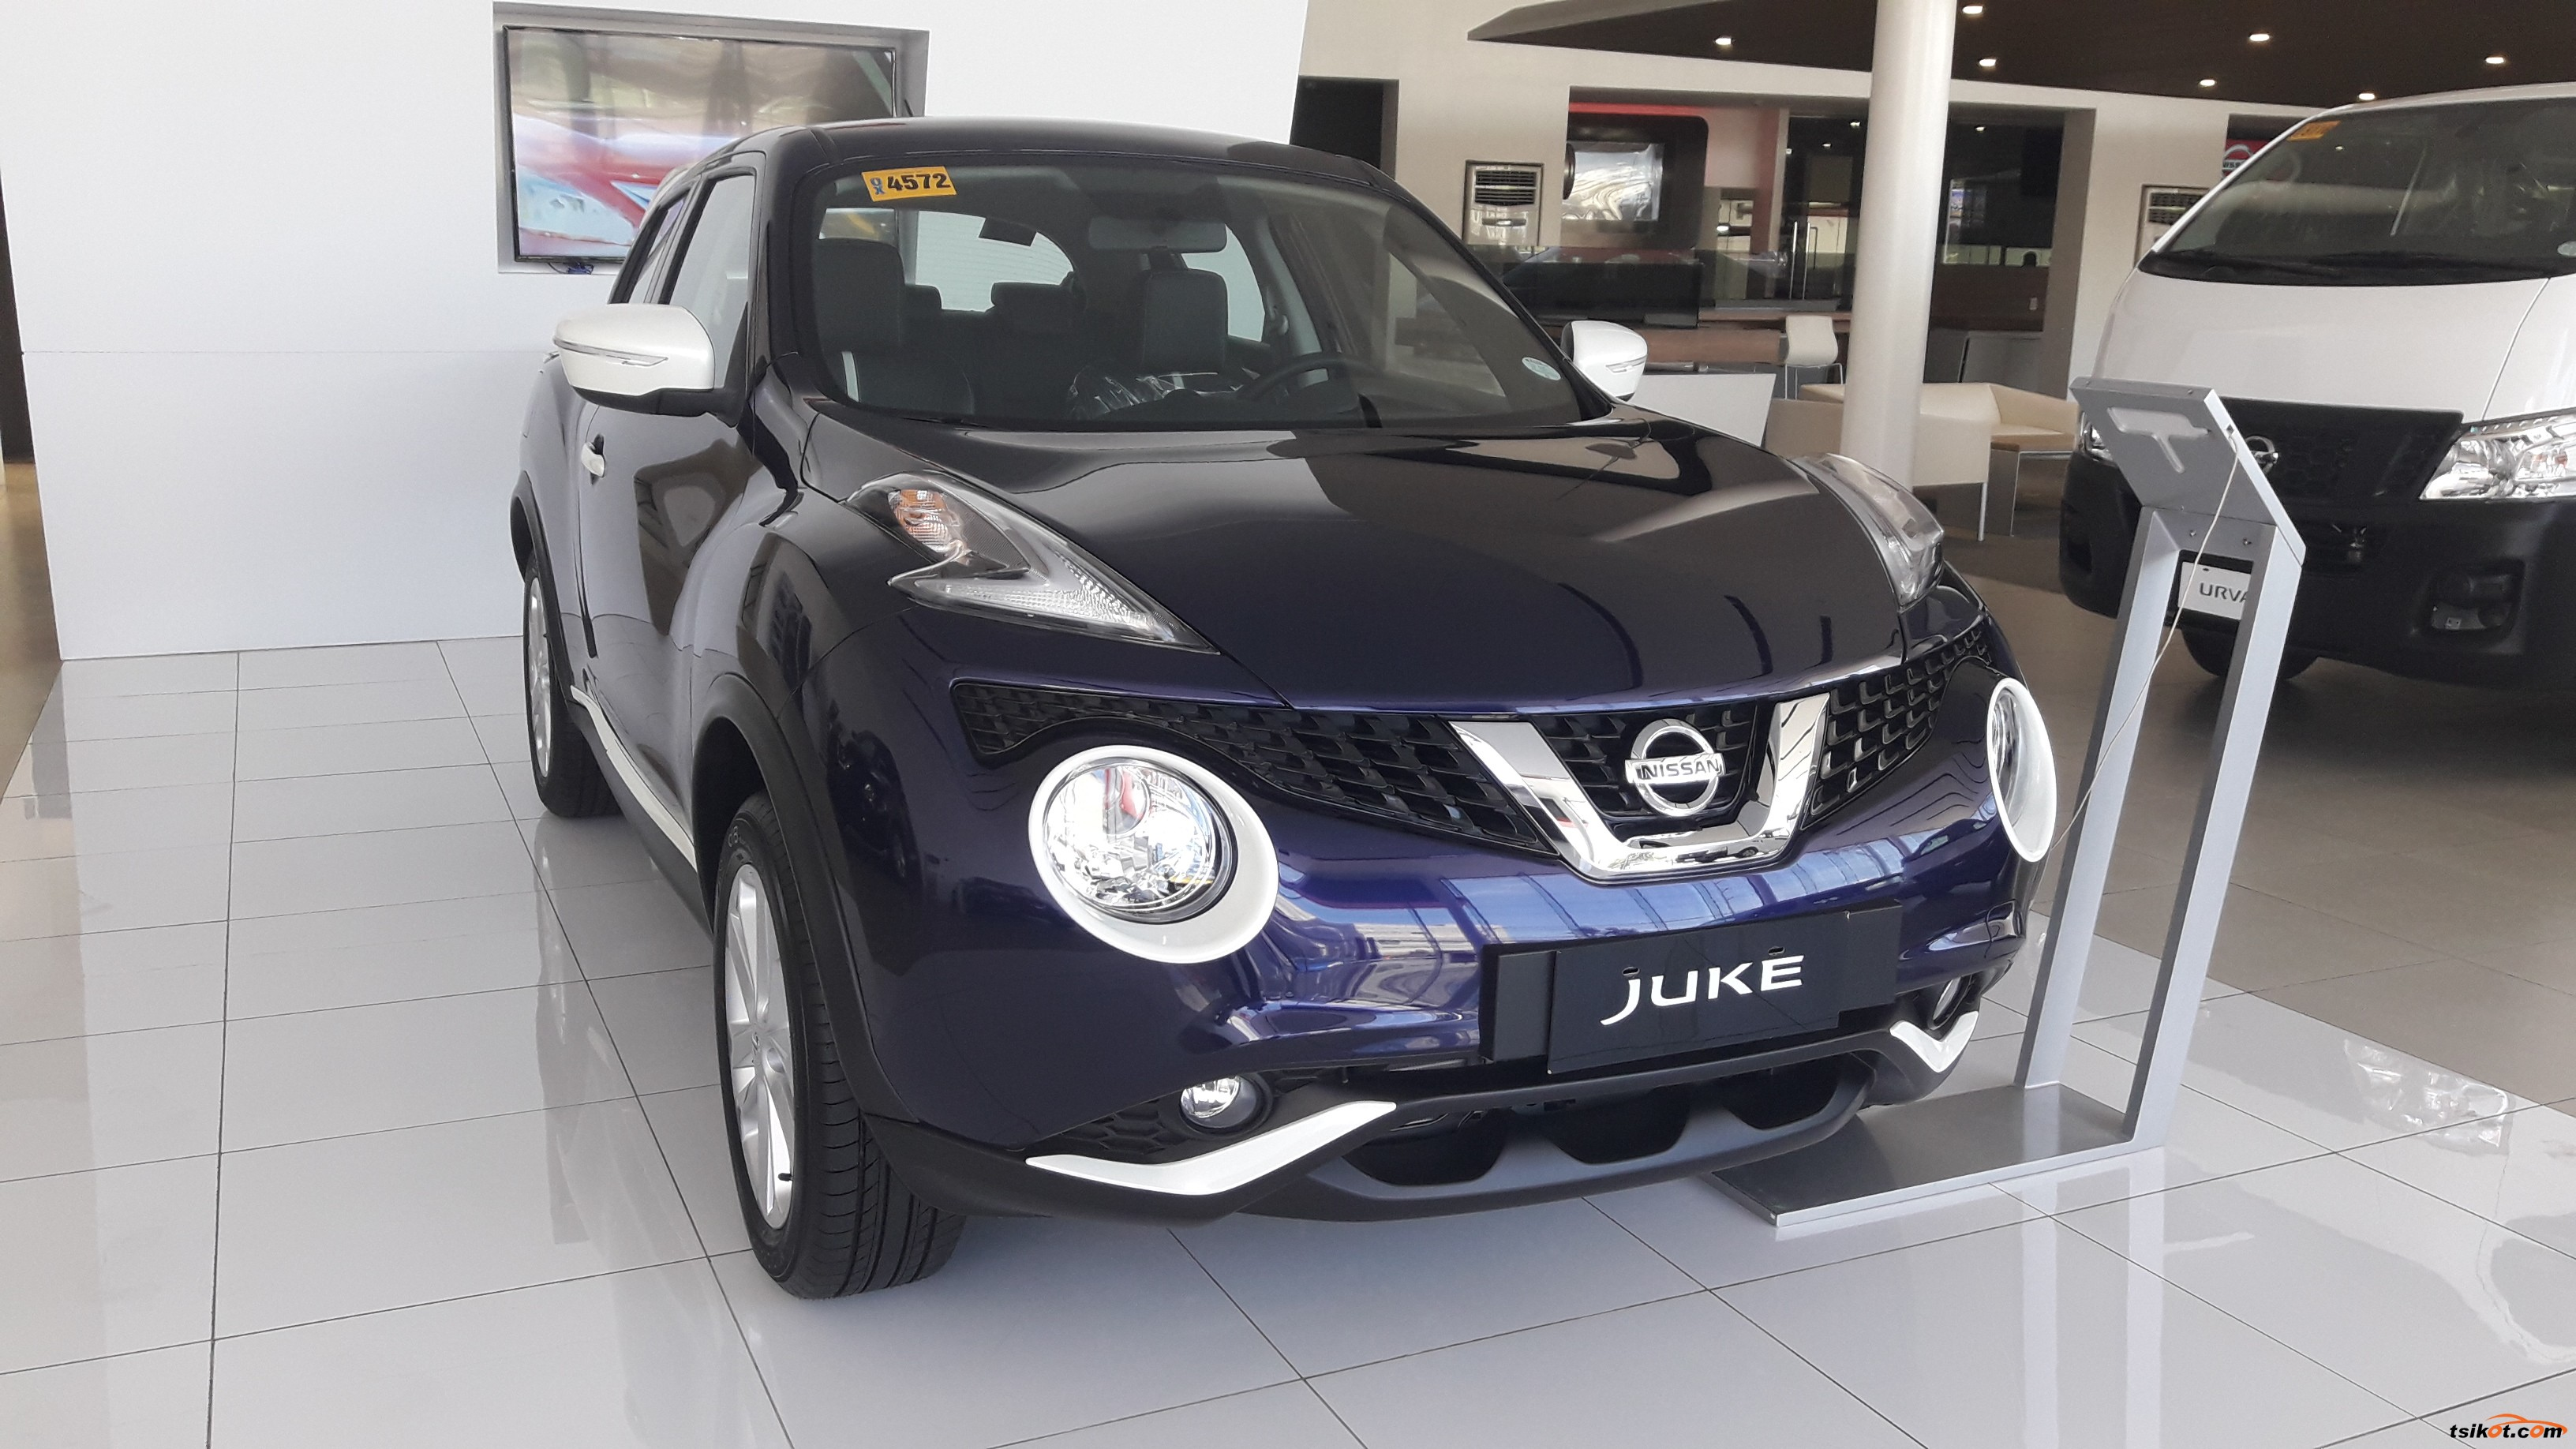 nissan juke 2017 car for sale metro manila philippines. Black Bedroom Furniture Sets. Home Design Ideas